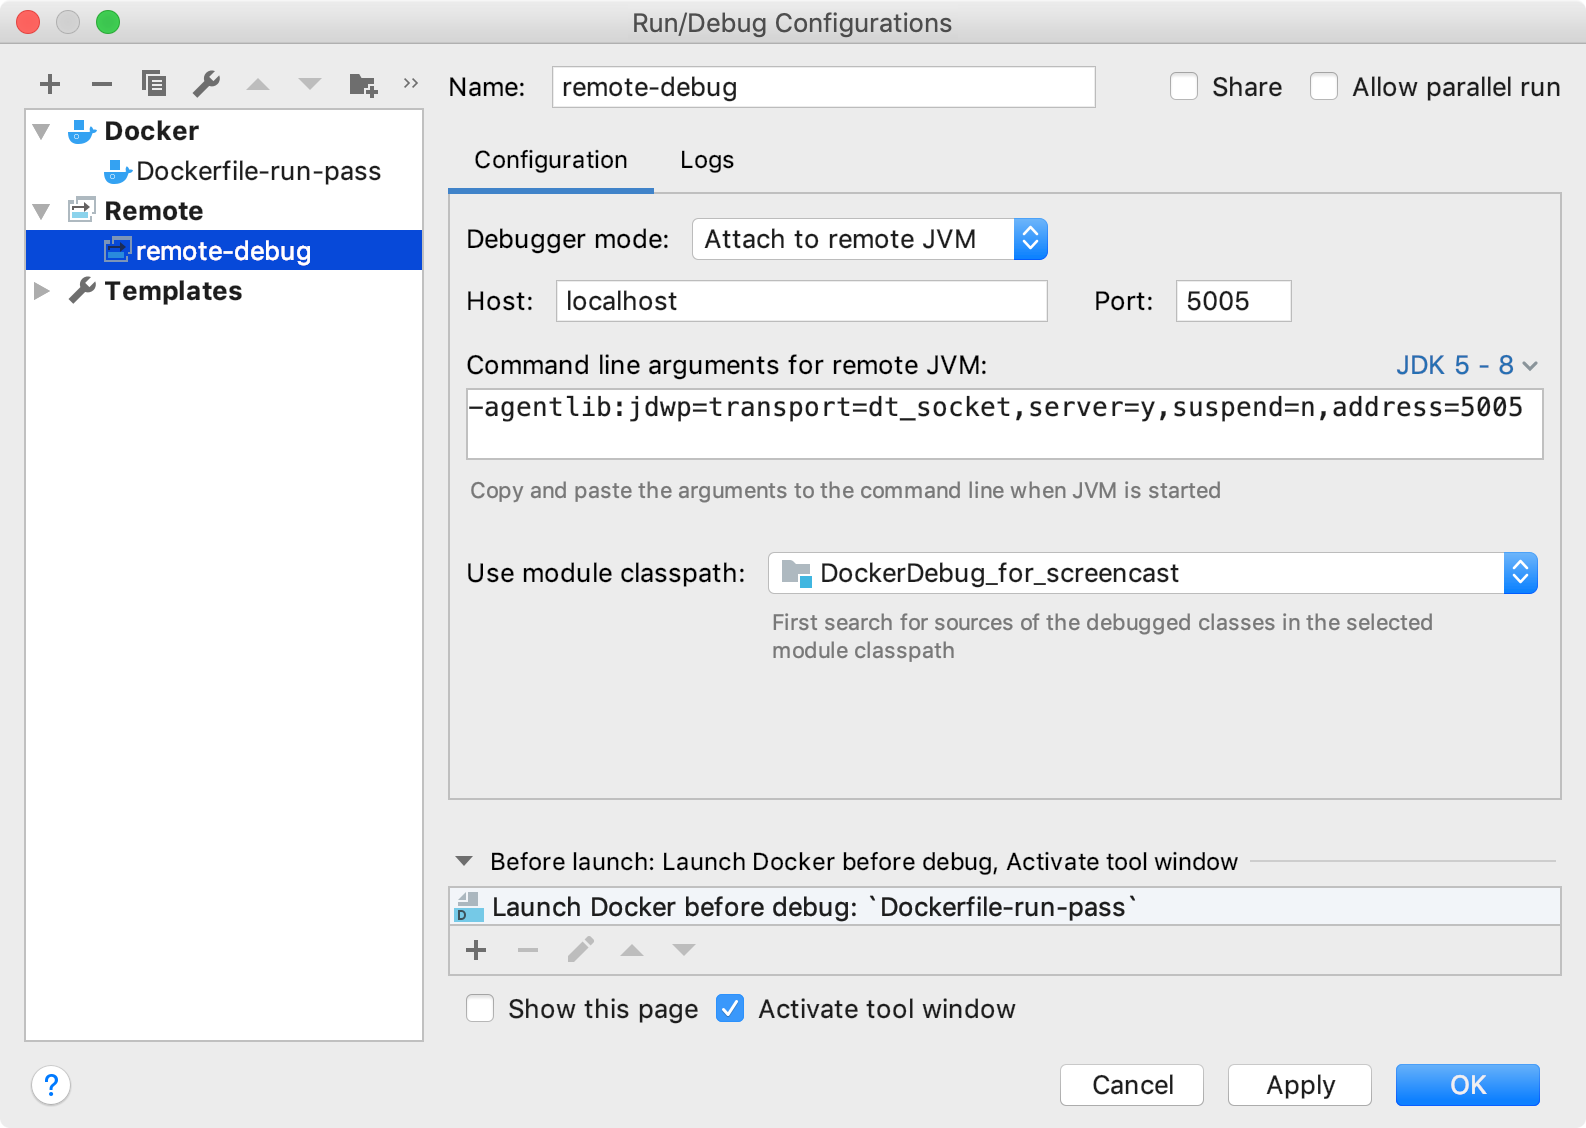 Remote debug configuration for a Java application running in a Docker container